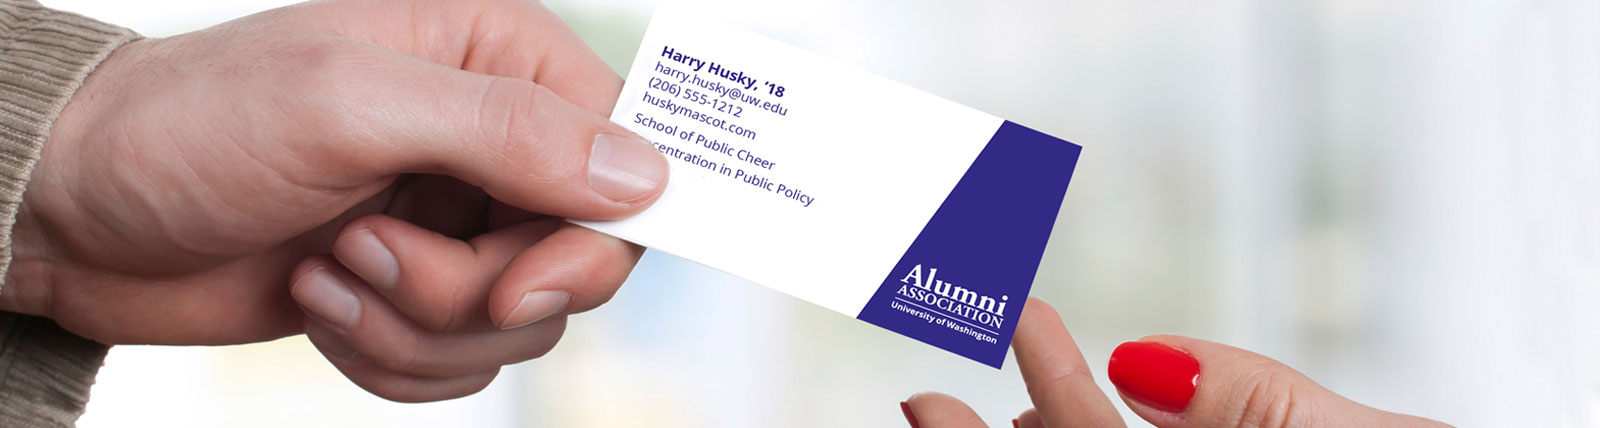 Be prepared: Get business cards from the UWAA | Alumni